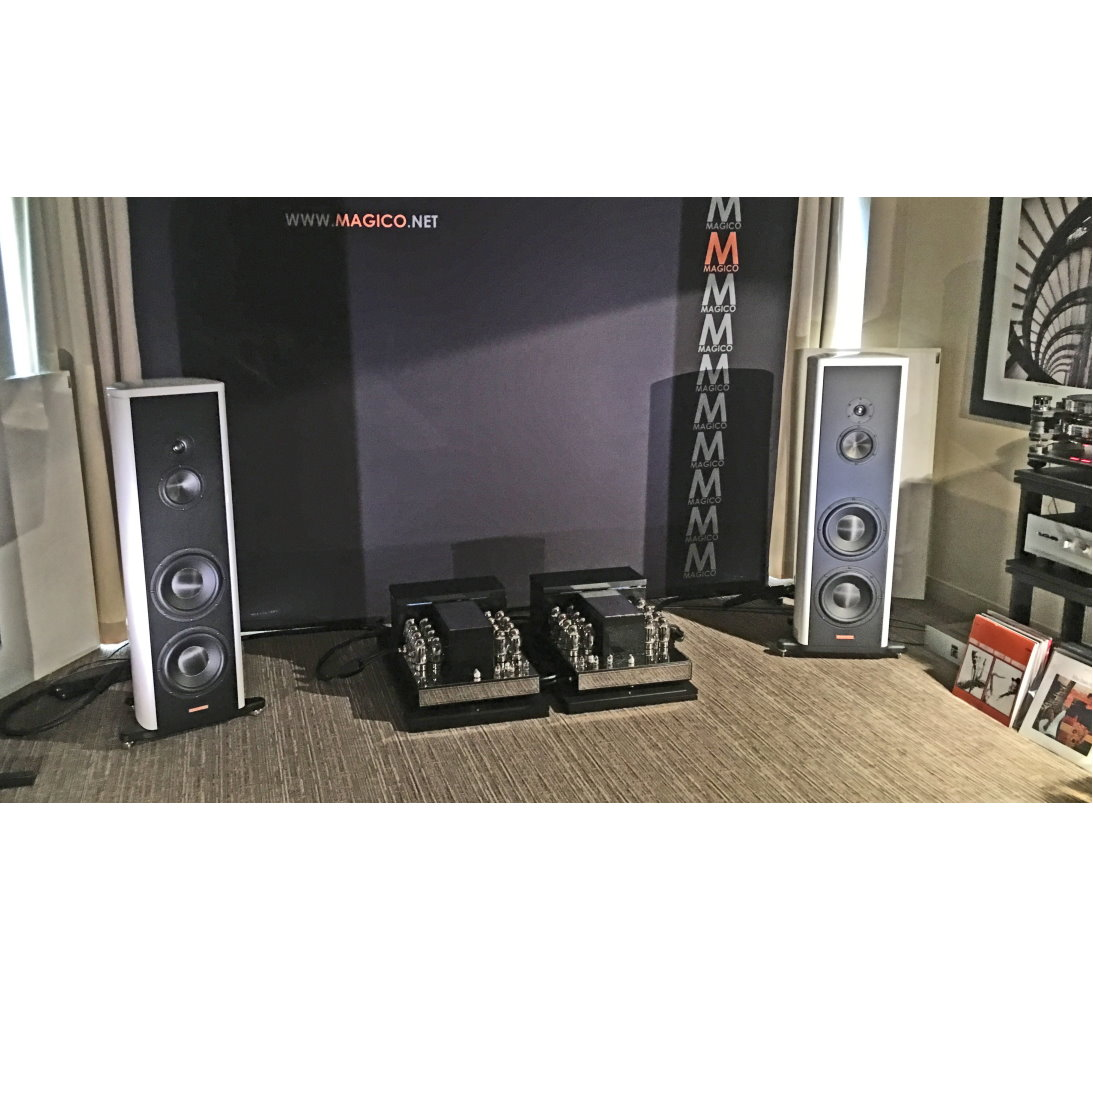 Convergent Audio Technology Jl 7 Black Path Edition Monoblock Tube Amplifiers